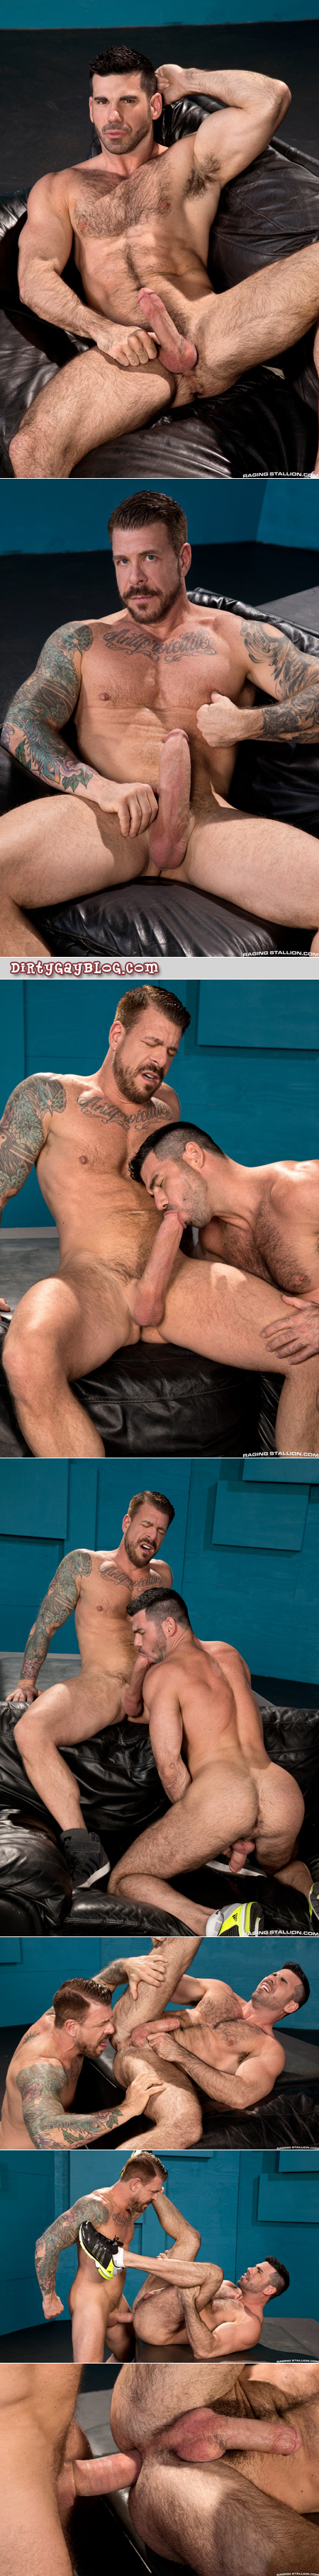 Well-hung muscle Daddy fucking a hairy muscle bear with his enormous cock.